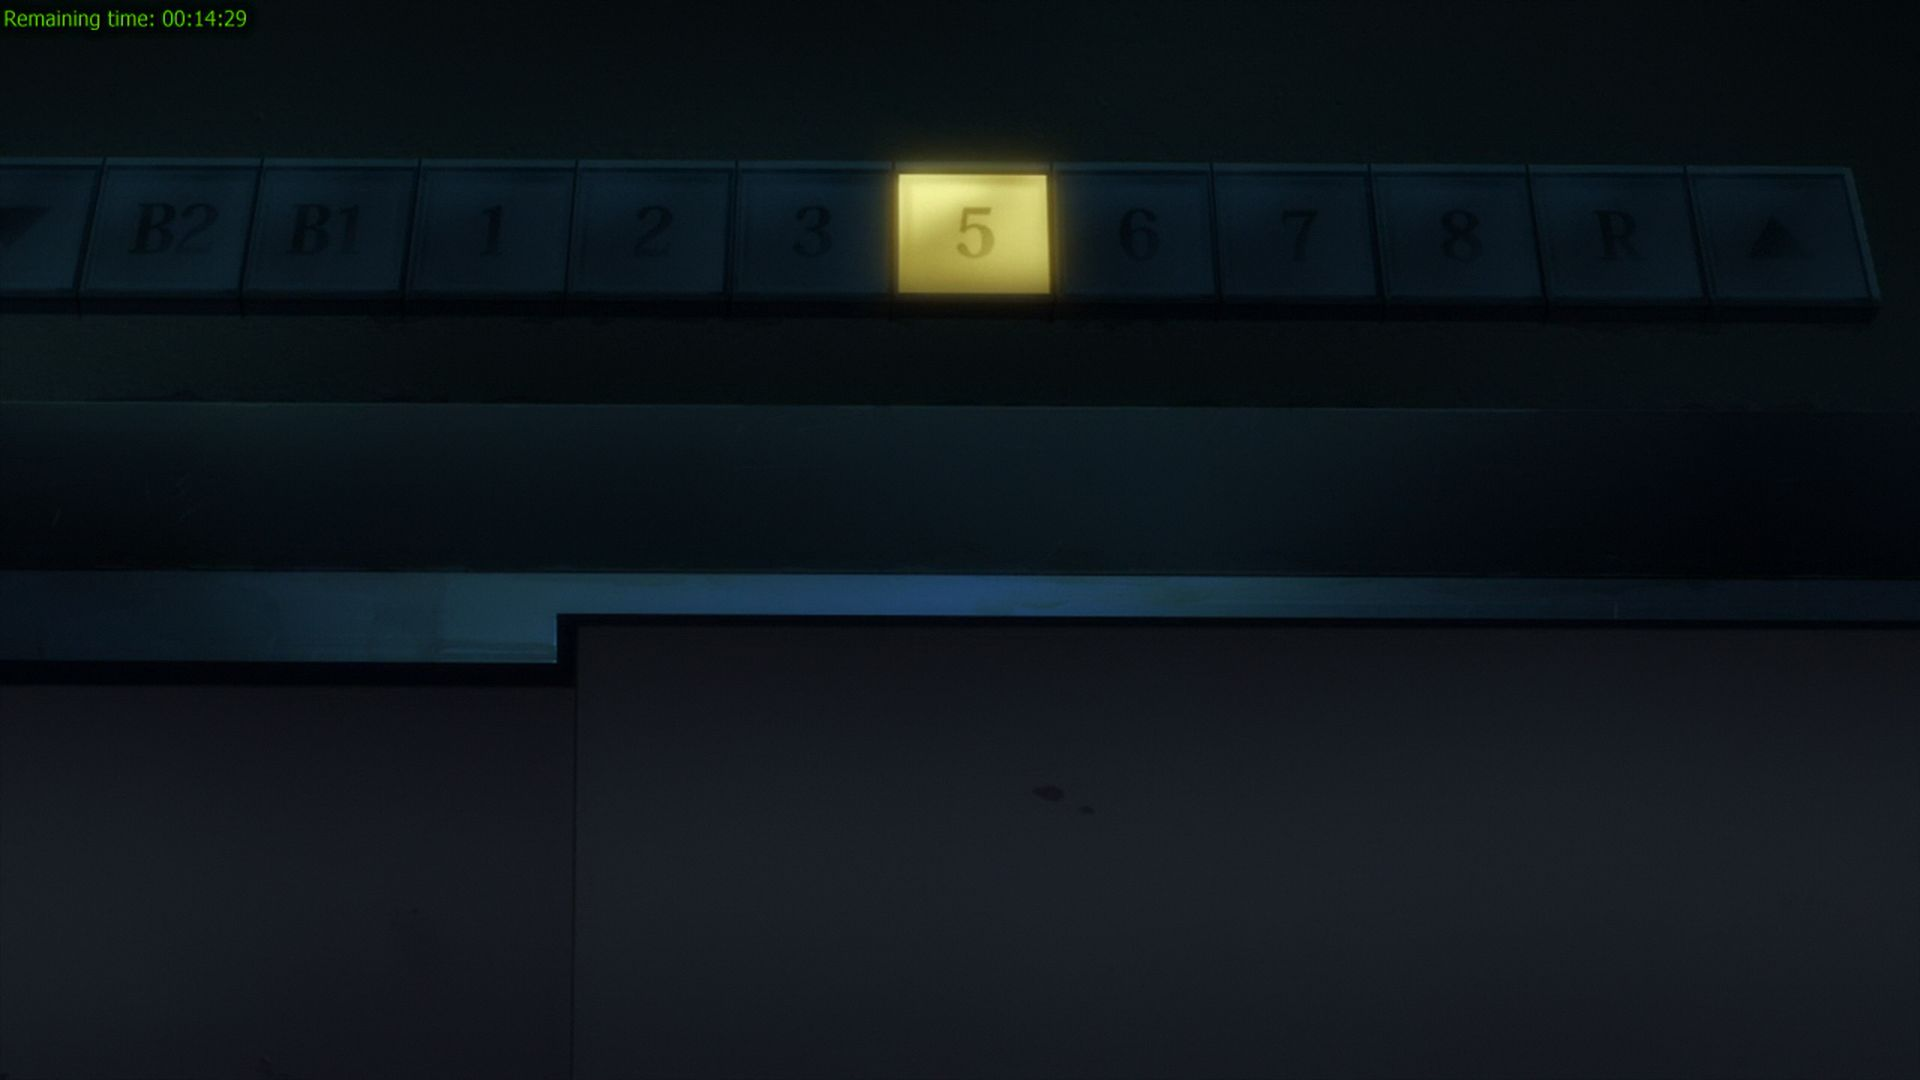 Befitting the genre this anime falls into, the hospitals in this anime also practised skipping death numbers for their floors' numbering scheme. I've seen this in real life, but didn't really expect to see it in my anime.